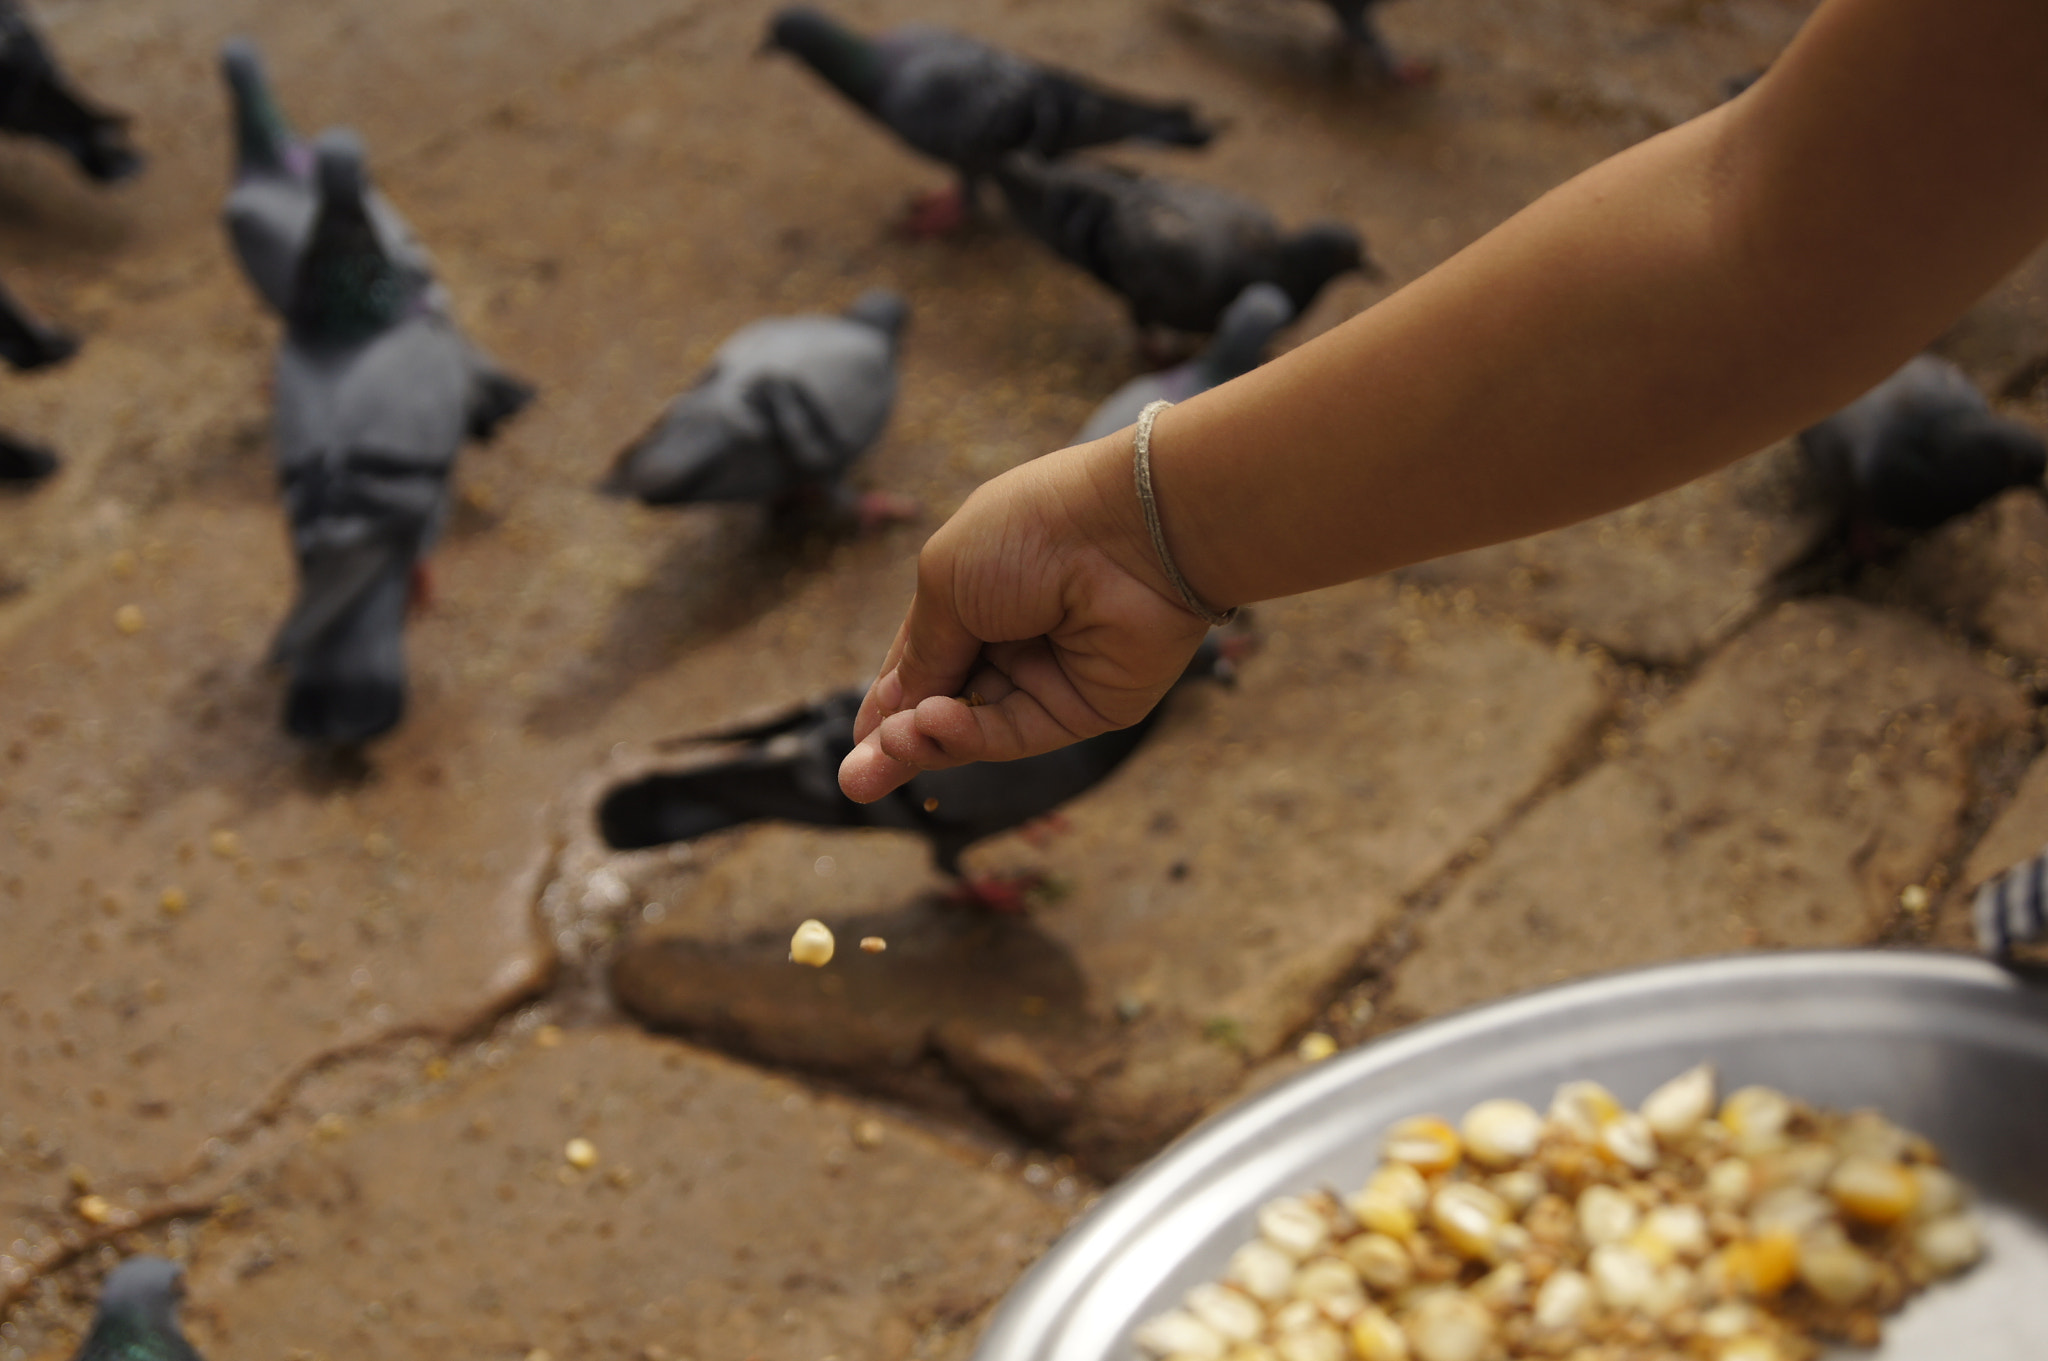 Photograph Feeding the Pigeon by Afzal Khan on 500px